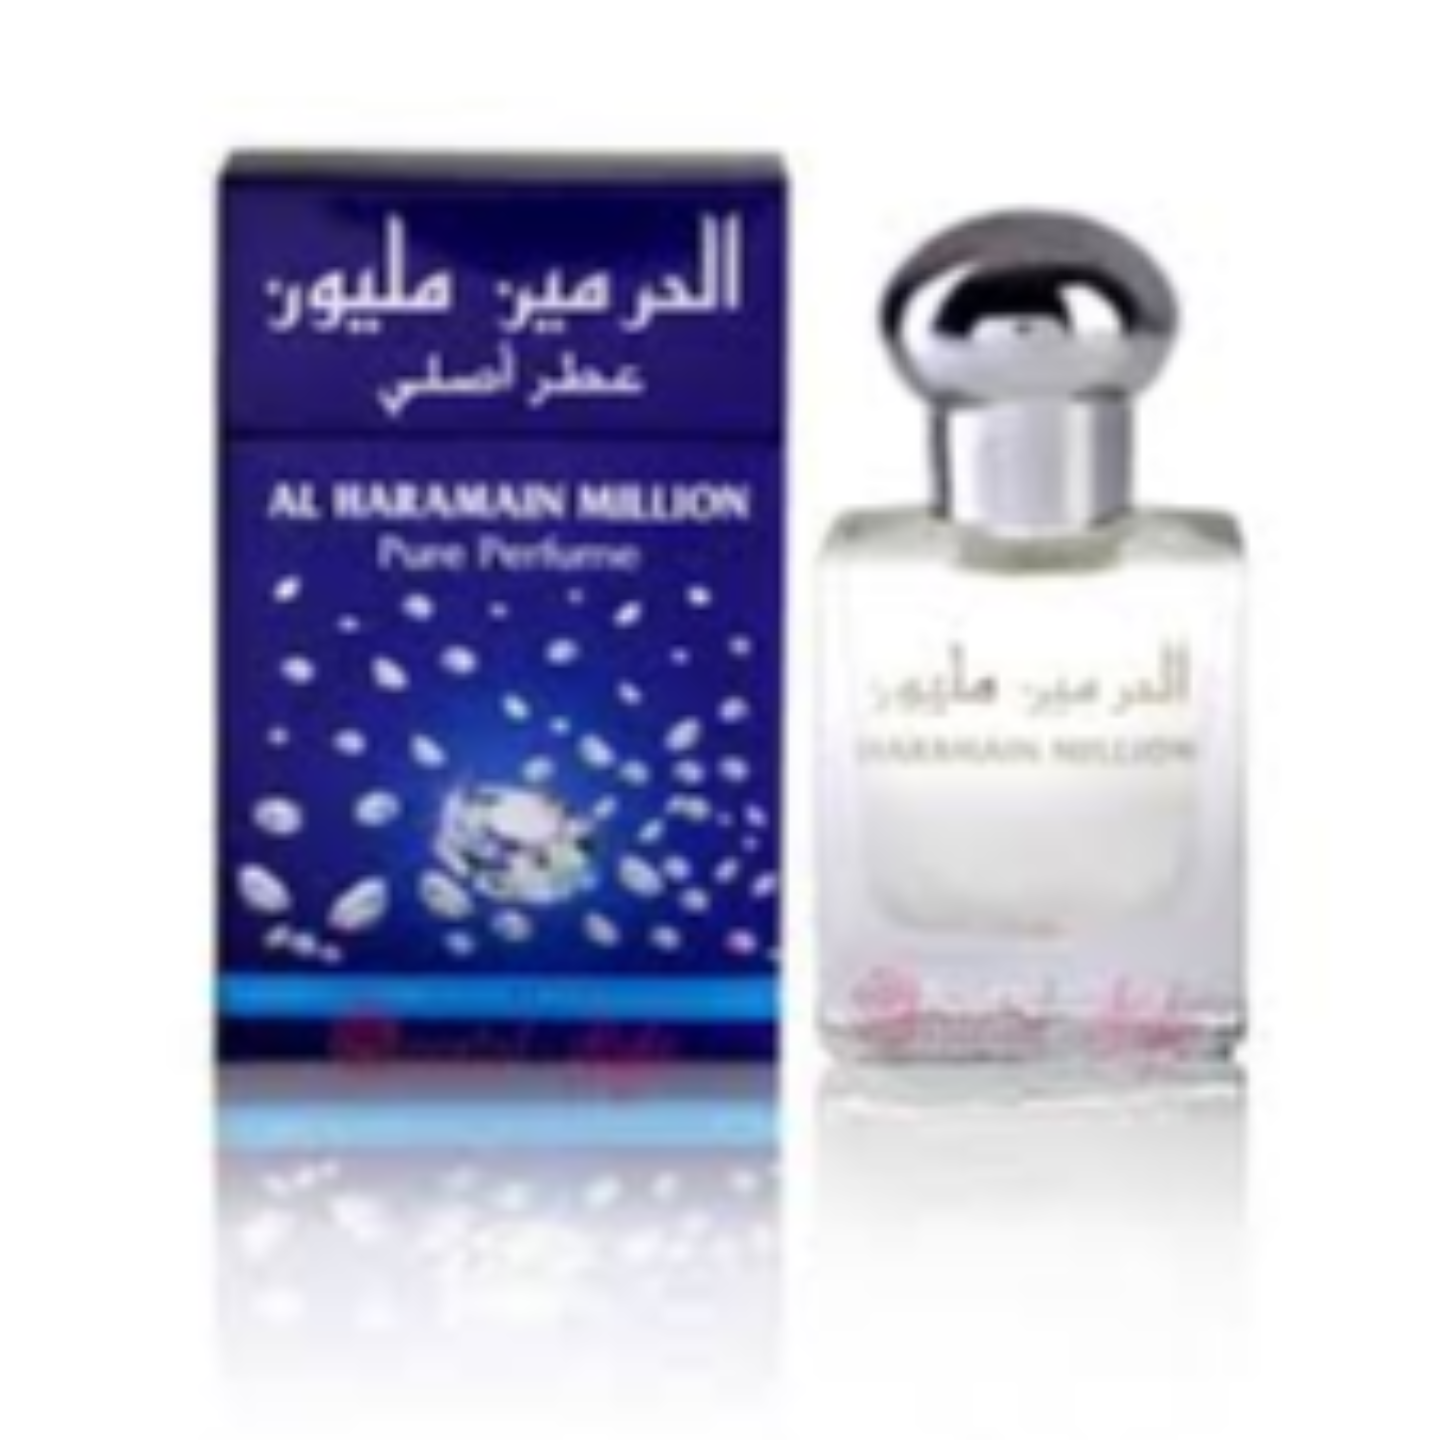 AL HARAMAIN MILLION ATTAR